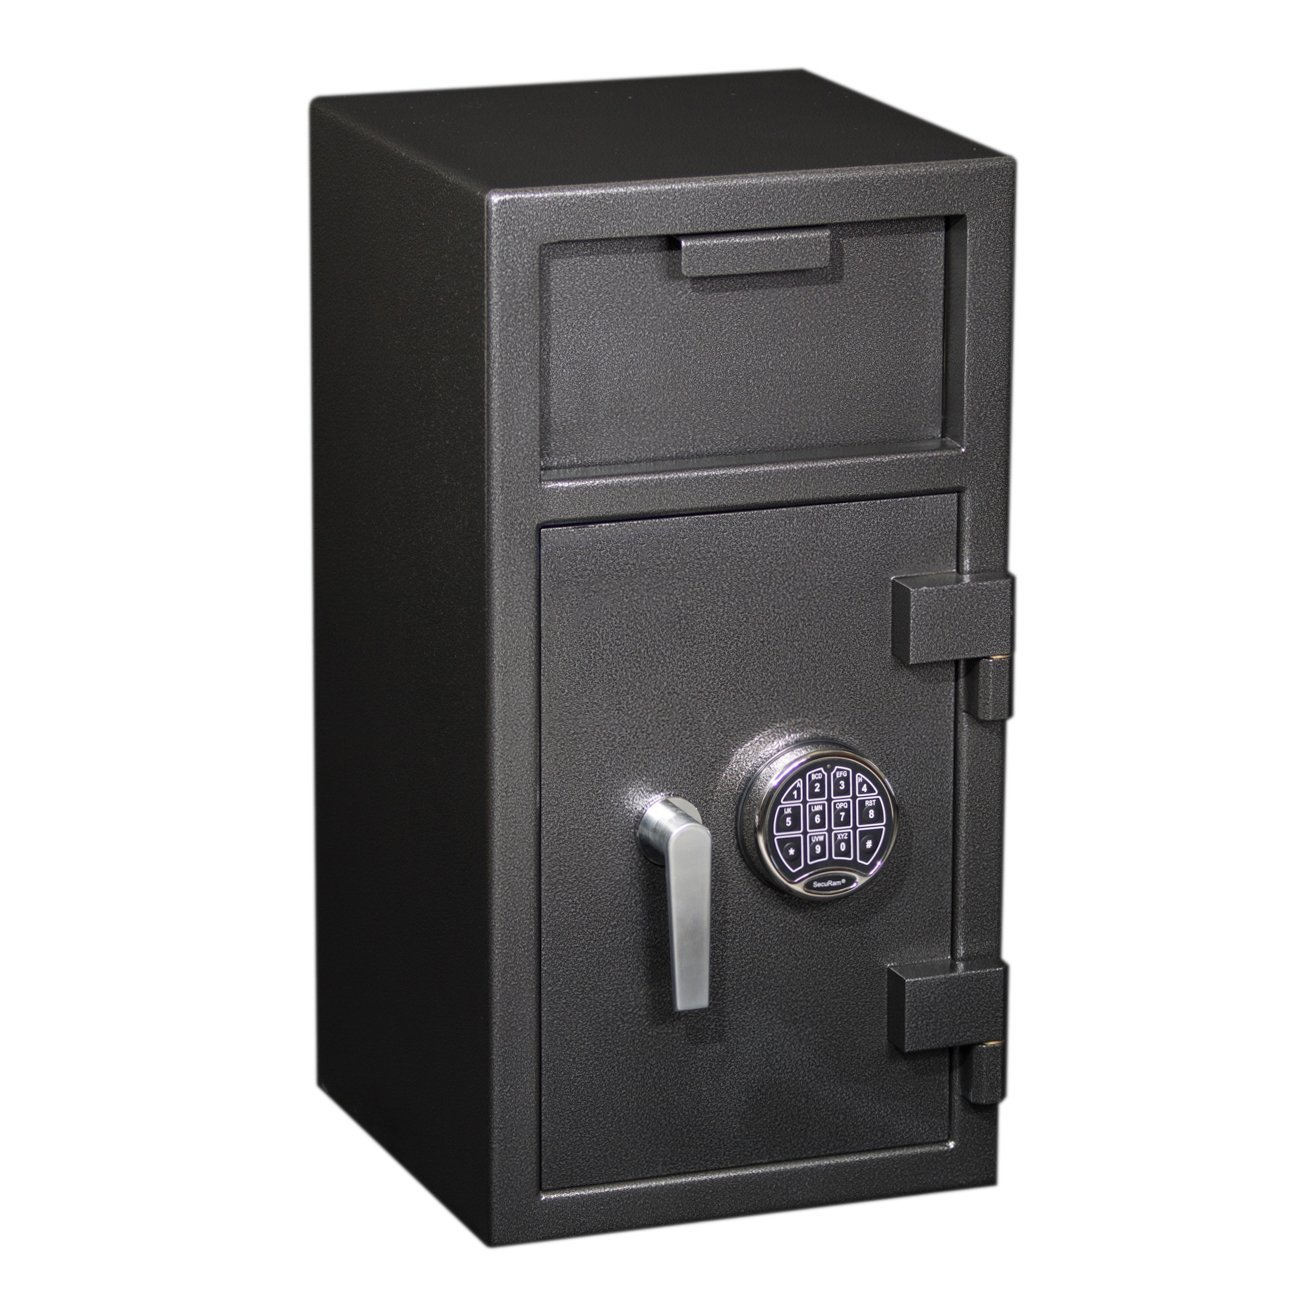 FD-2714 Protex Front Loading Depository Drop Safe w/ Electronic Lock